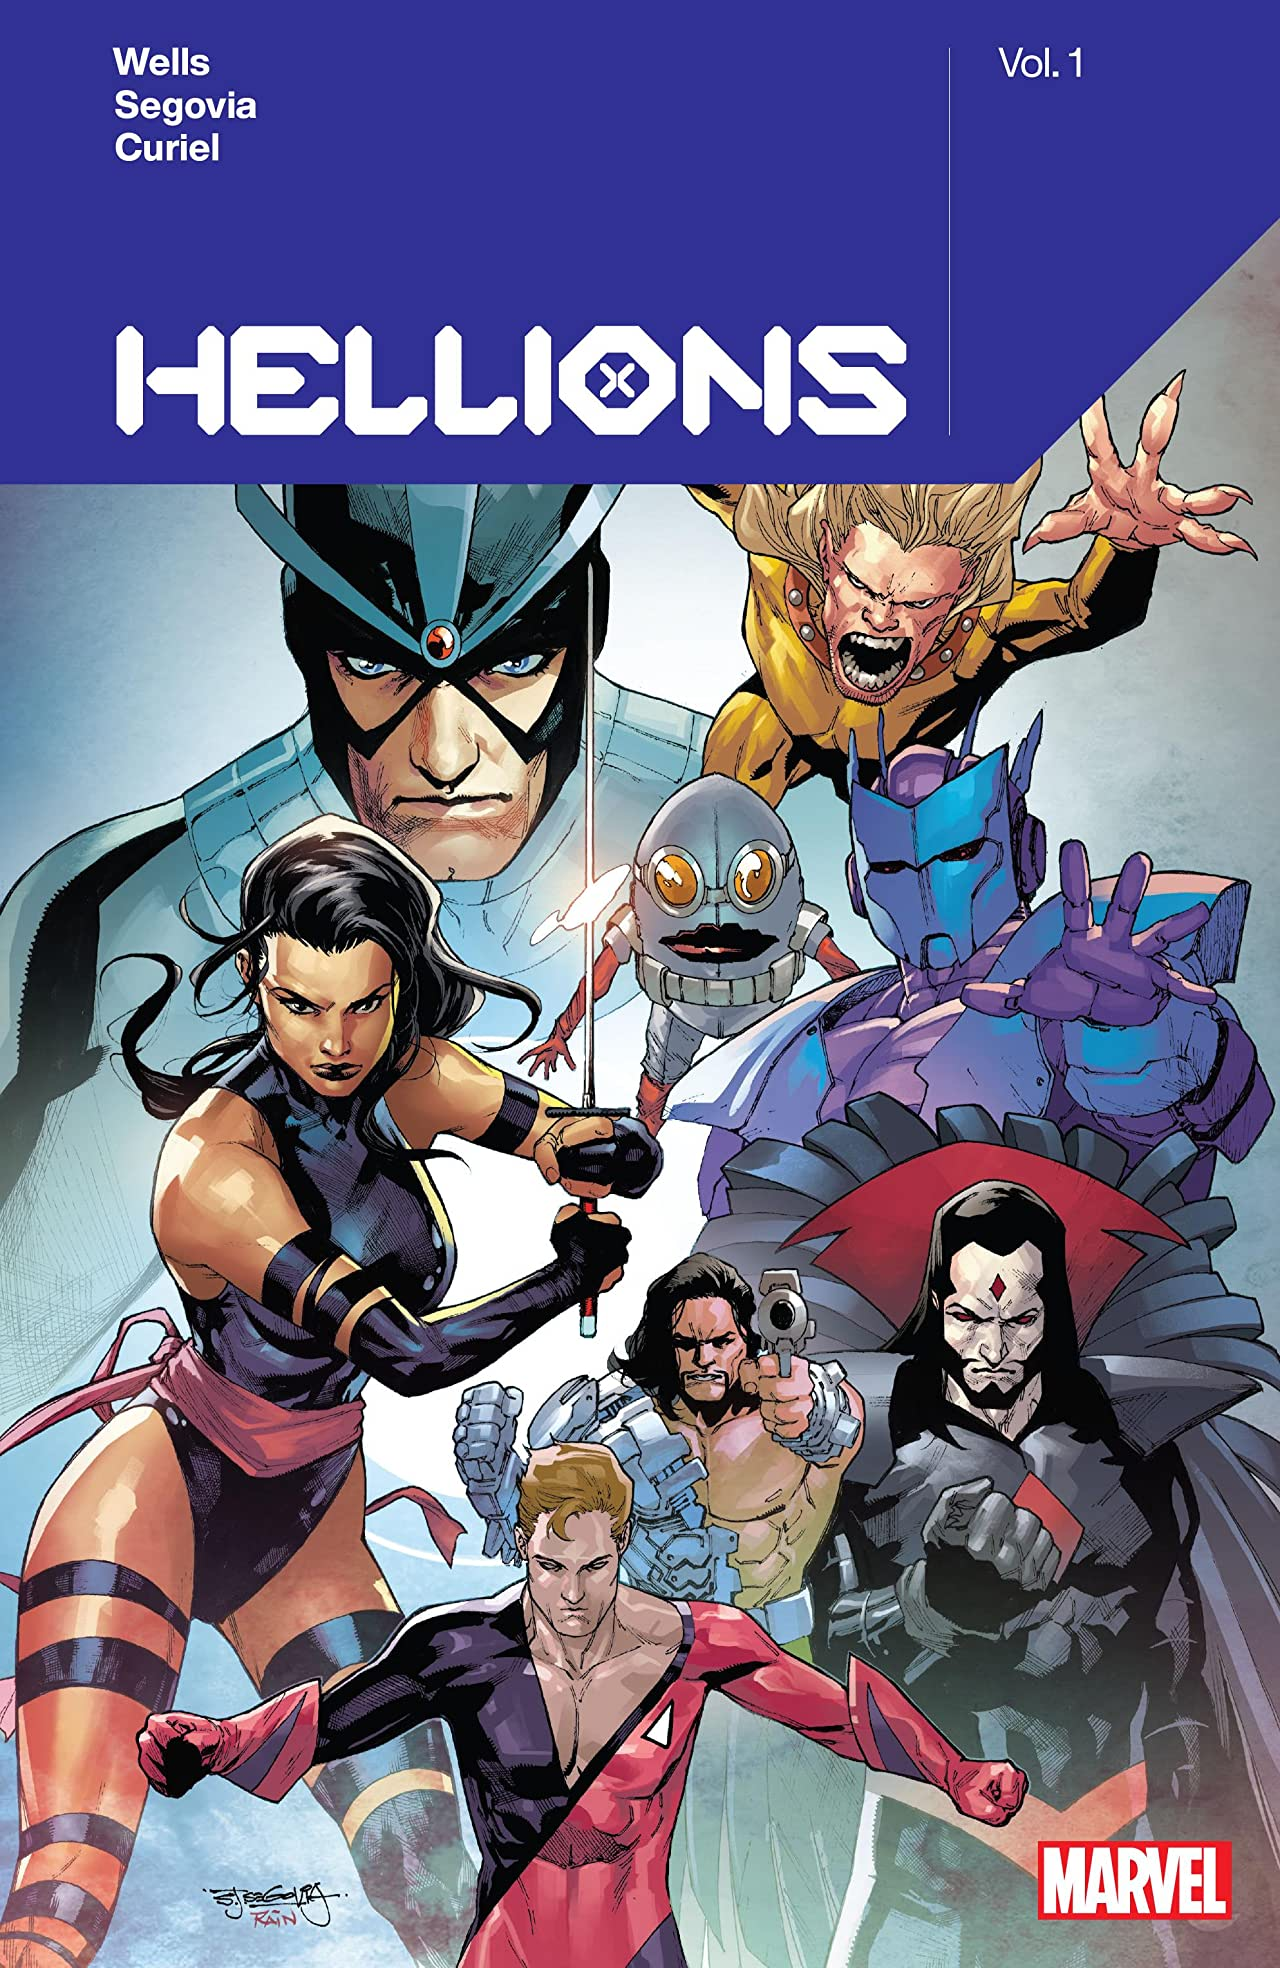 Hellions by Zeb Wells Vol. 1